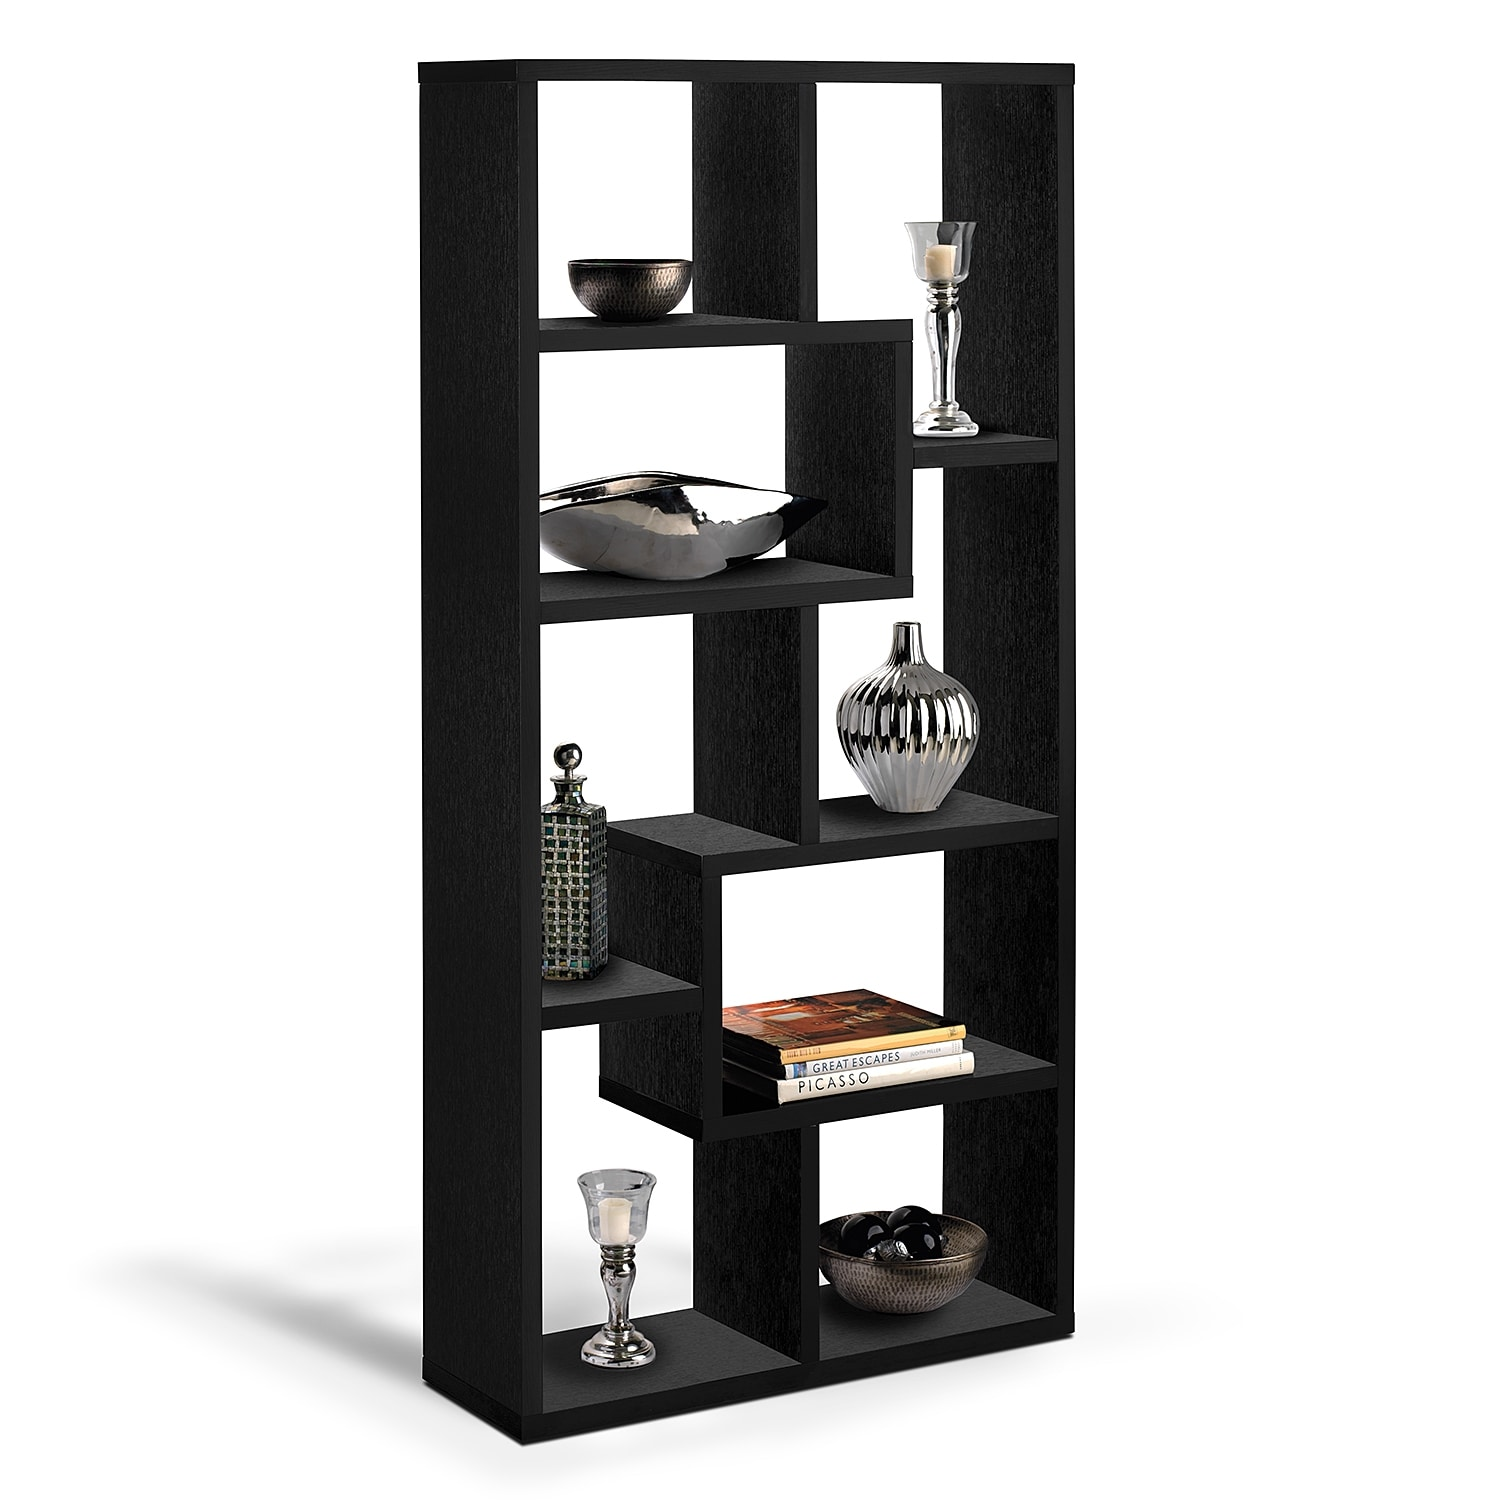 Obsidian Accent Pieces Bookcase - Value City Furniture